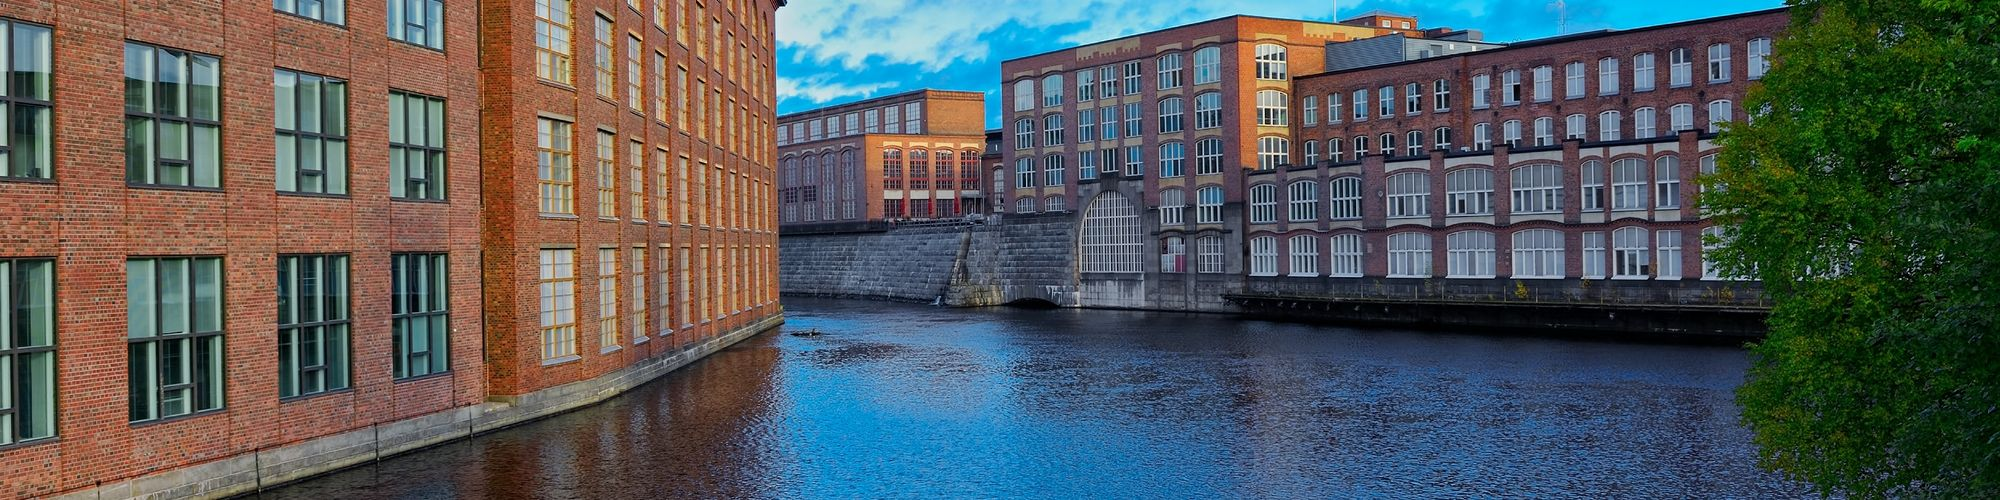 Tampere cuts energy costs in buildings by 50%